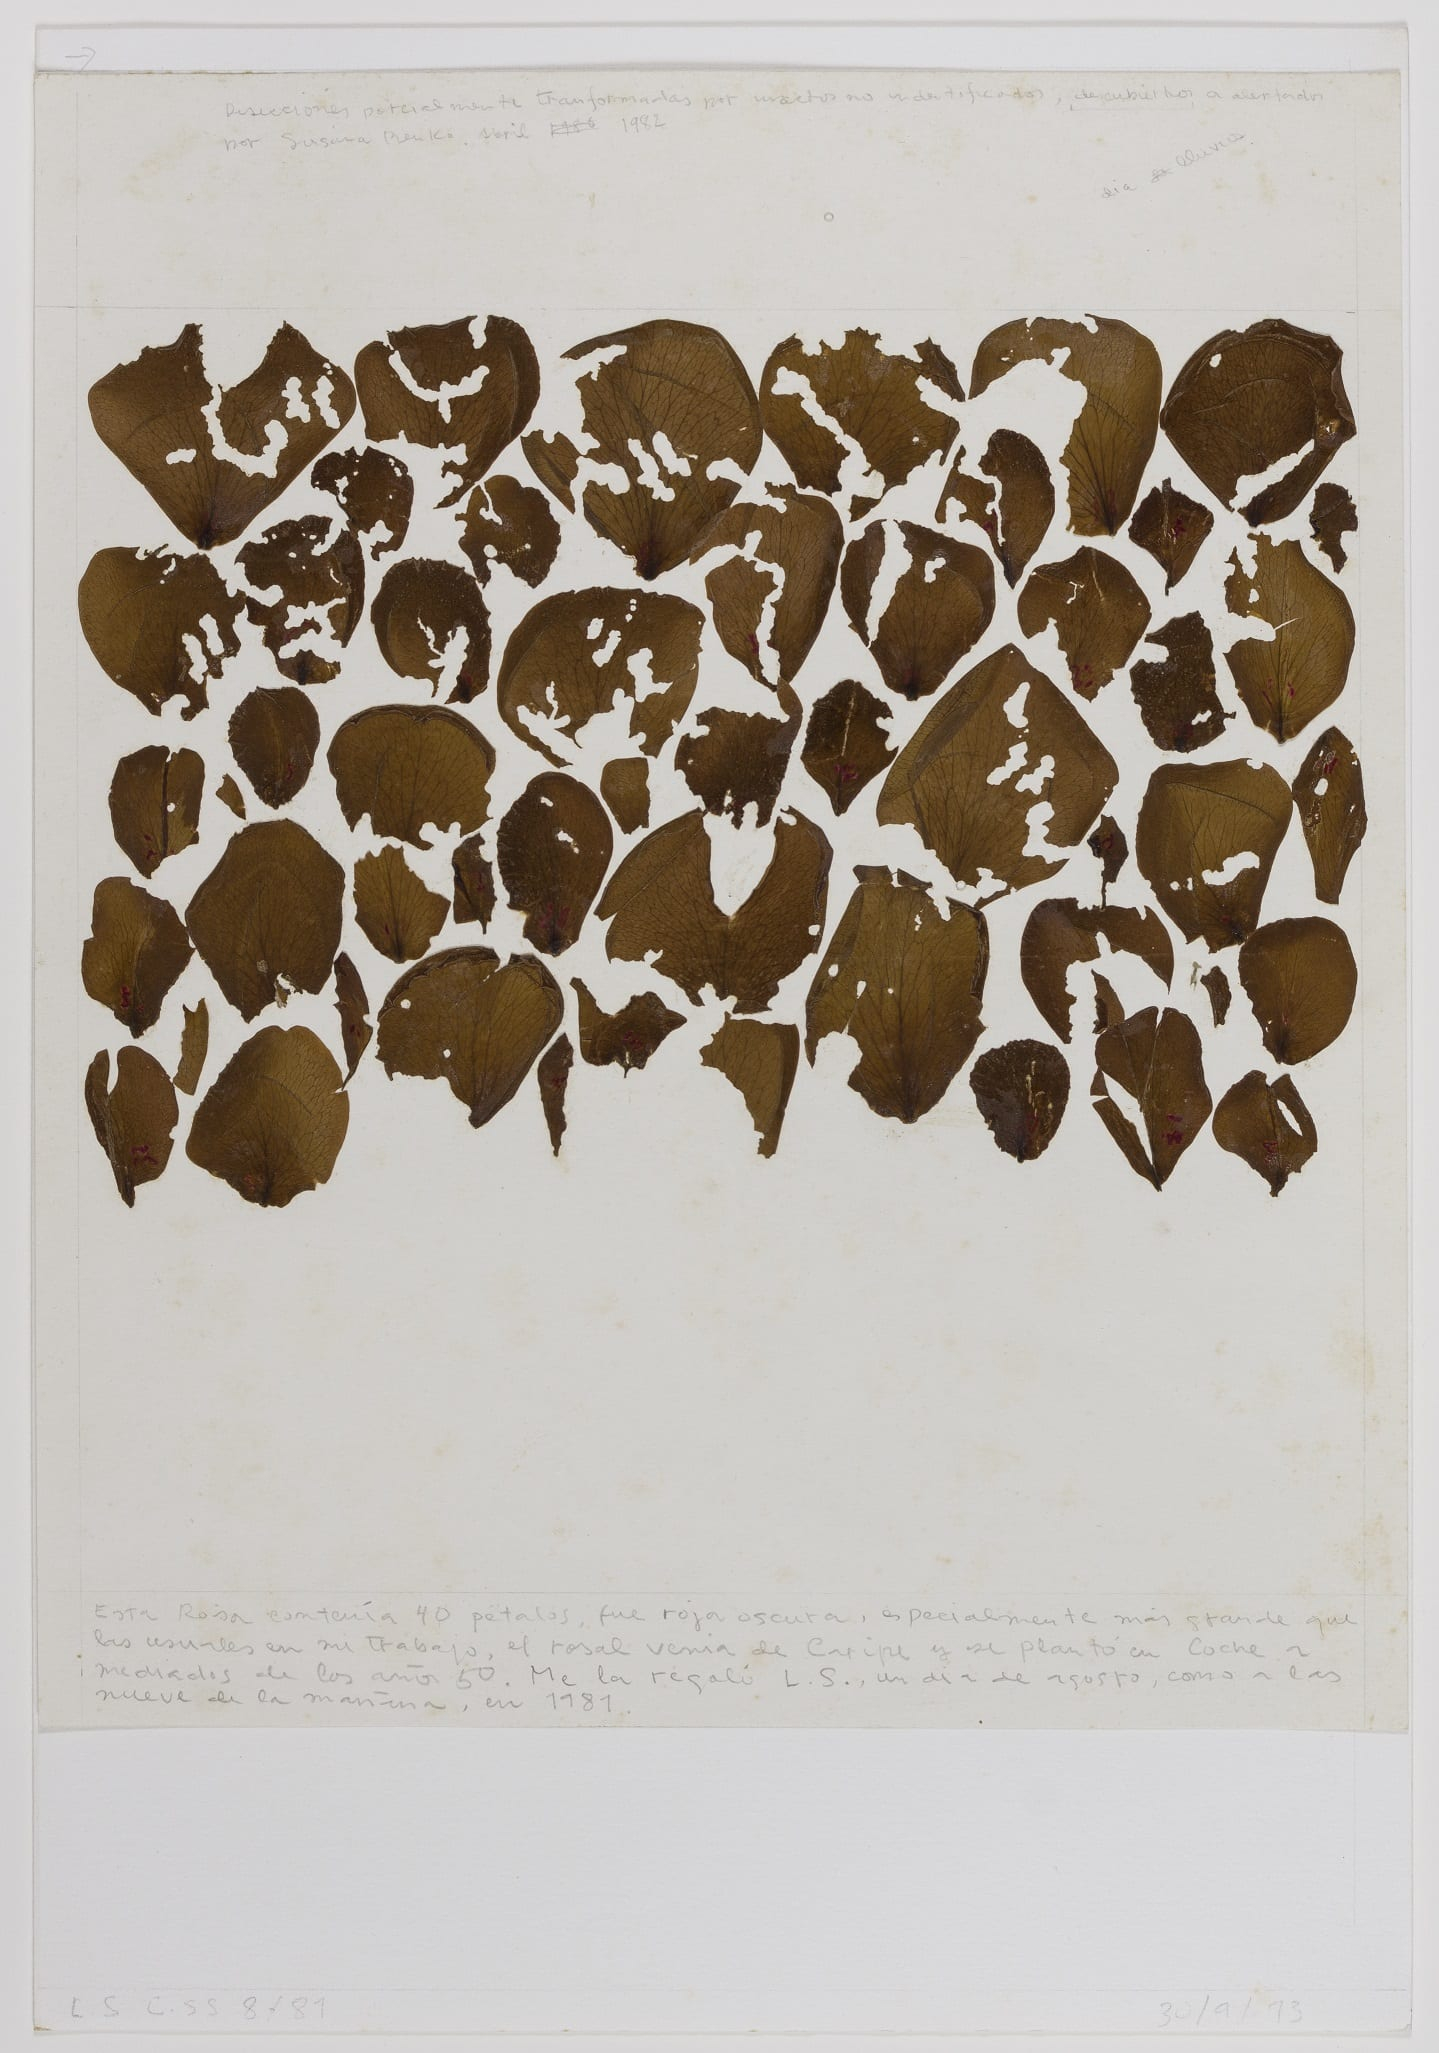 Collage with forty dried rose petals glued to paper with handwritten notes by the artist